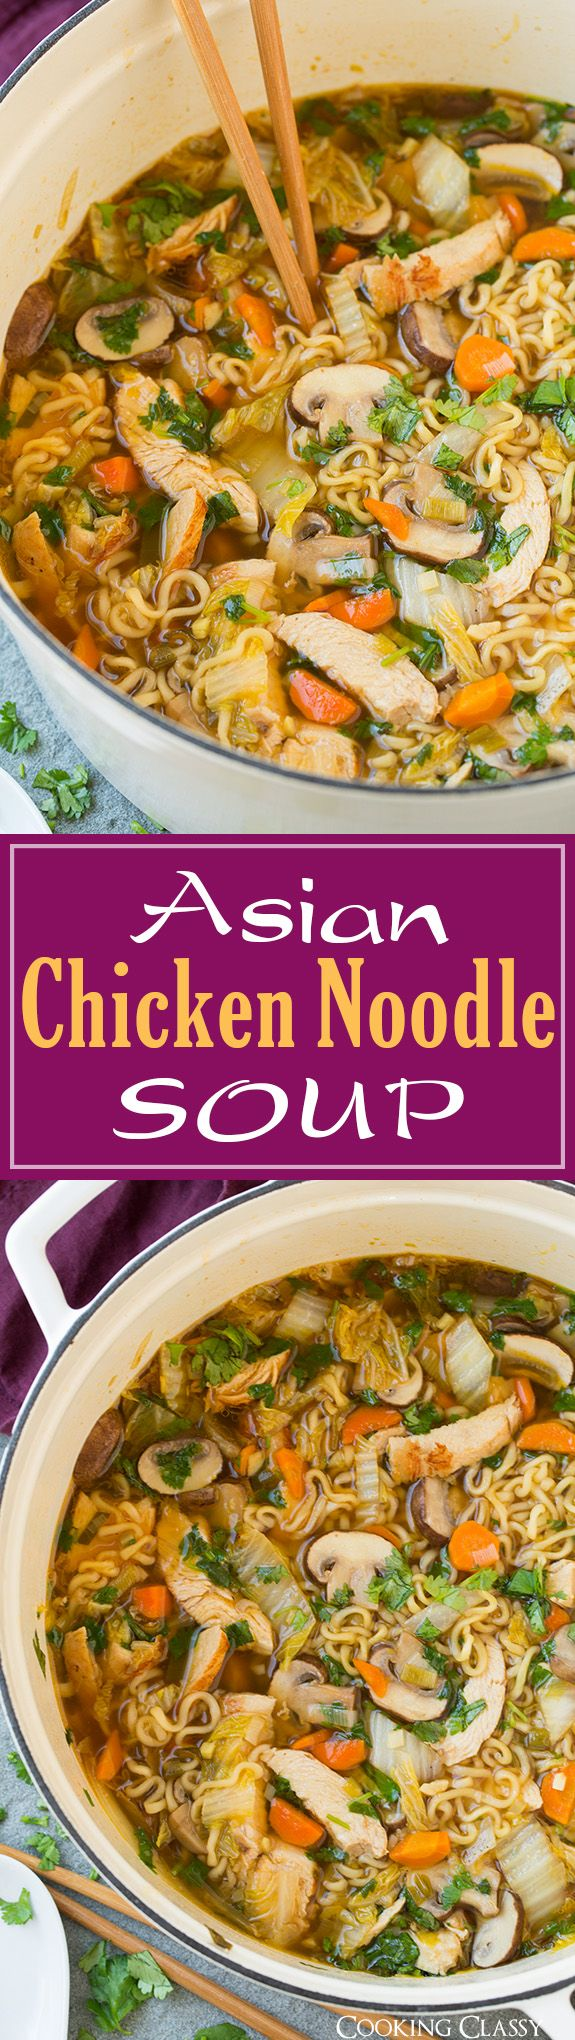 Asian Chicken Noodle Soup – this ramen spin on chicken noodle soup is SO DELICIOUS! Easy to make and perfect for a cold fall day!